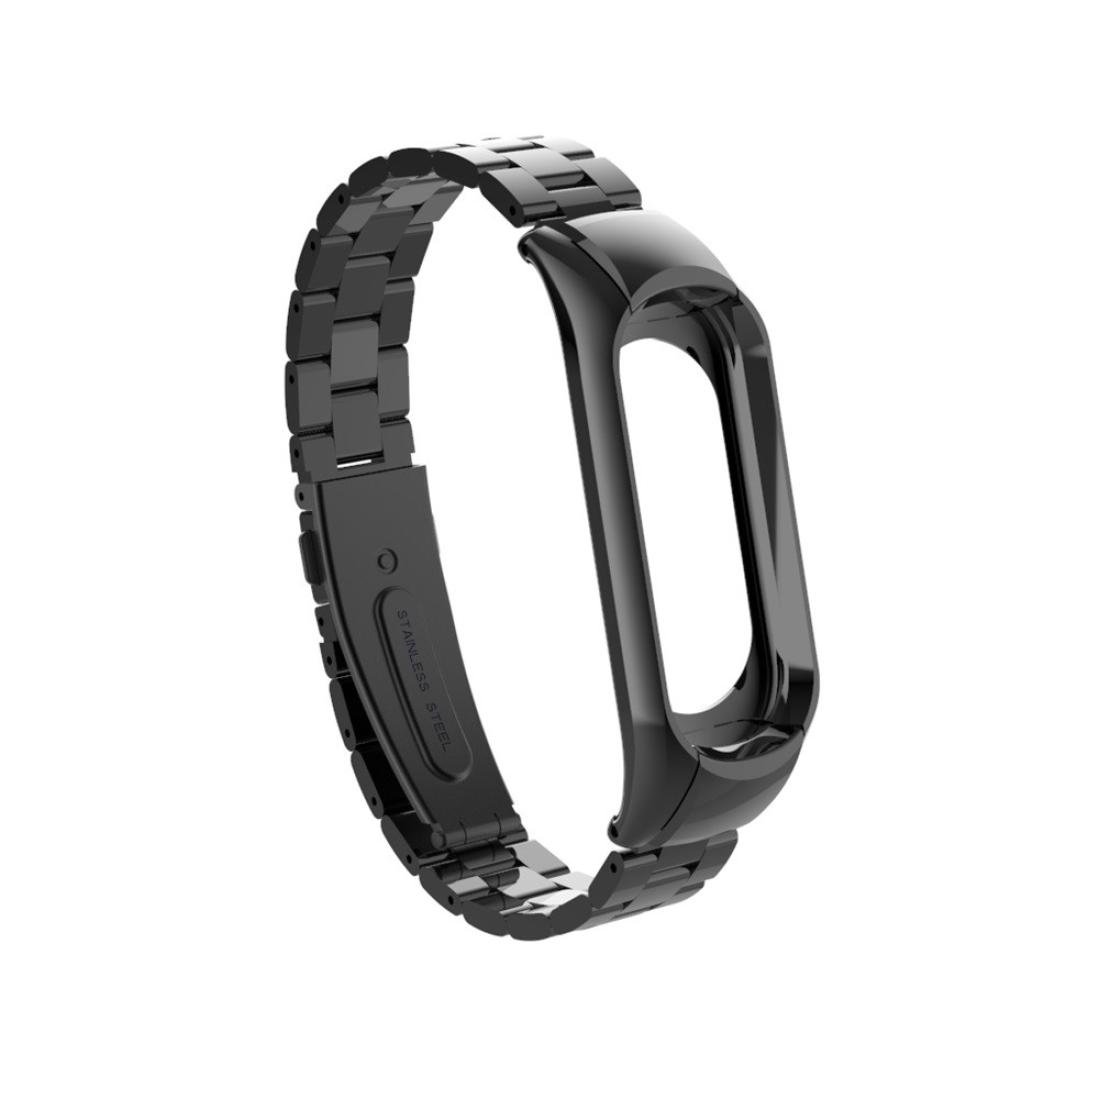 Amazon.com: HighlifeS Watch Band, Band for Xiaomi Smartwatch ...